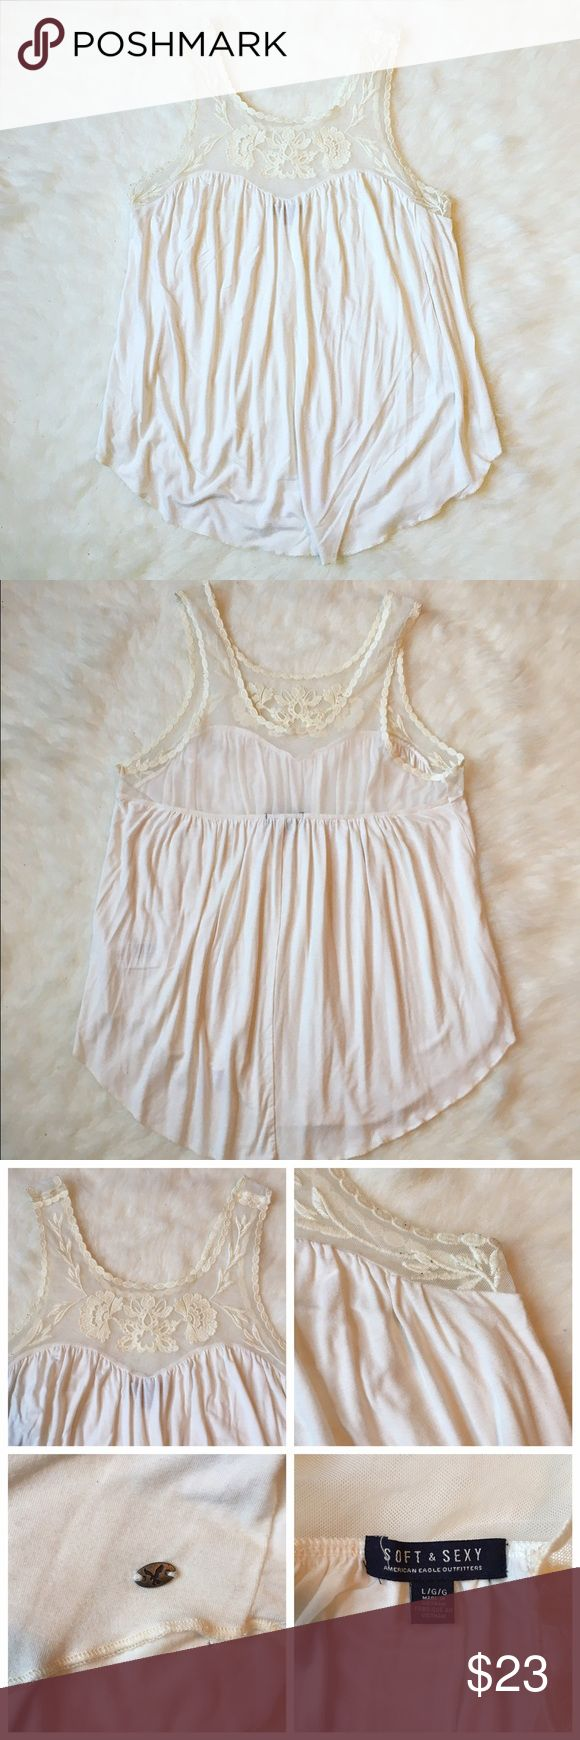 American Eagle fashion tank This is an American Eagle outfitters fashion tank top. It is a gorgeous white tank with beautiful lace. ONLY WORN ONCE! 💞💞💞🚫NO TRADES🚫 American Eagle Outfitters Tops Tank Tops